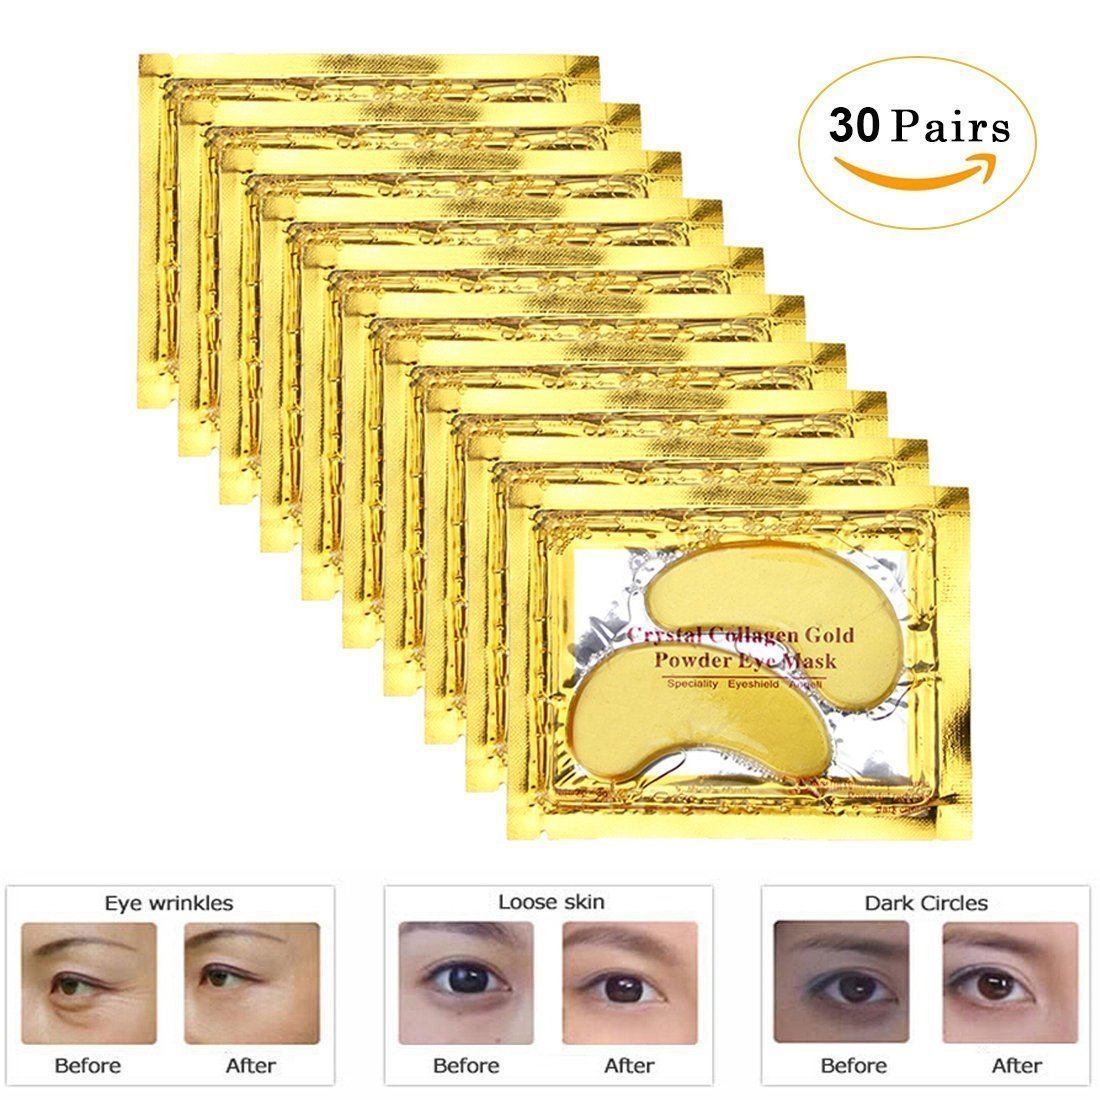 24k Gold Eye Pads-30 Pairs Collagen Eye Mask Powder Crystal Gel For Anti-Aging & Moisturizing Reducing Dark Circles, Puffiness, Wrinkles by INSANY by INSANY (Image #2)